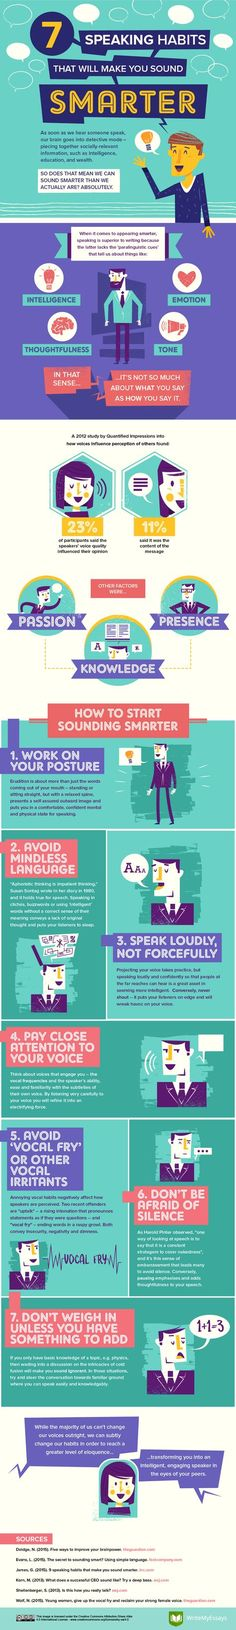 How to interact at networking events and these fantastic ways to sound smarter. Have you ever come across a person or heard someone speak and you thought that he or she was a very smart speaker? All around us, there are smart speakers and dumb speakers. The latter doesn't always mean that the person is literally dumb or stupid. It is just that the way they speak doesn't induce confidence. #Communication #Speech #Meetings #Posture #Psychology #Jobs #Lecturer